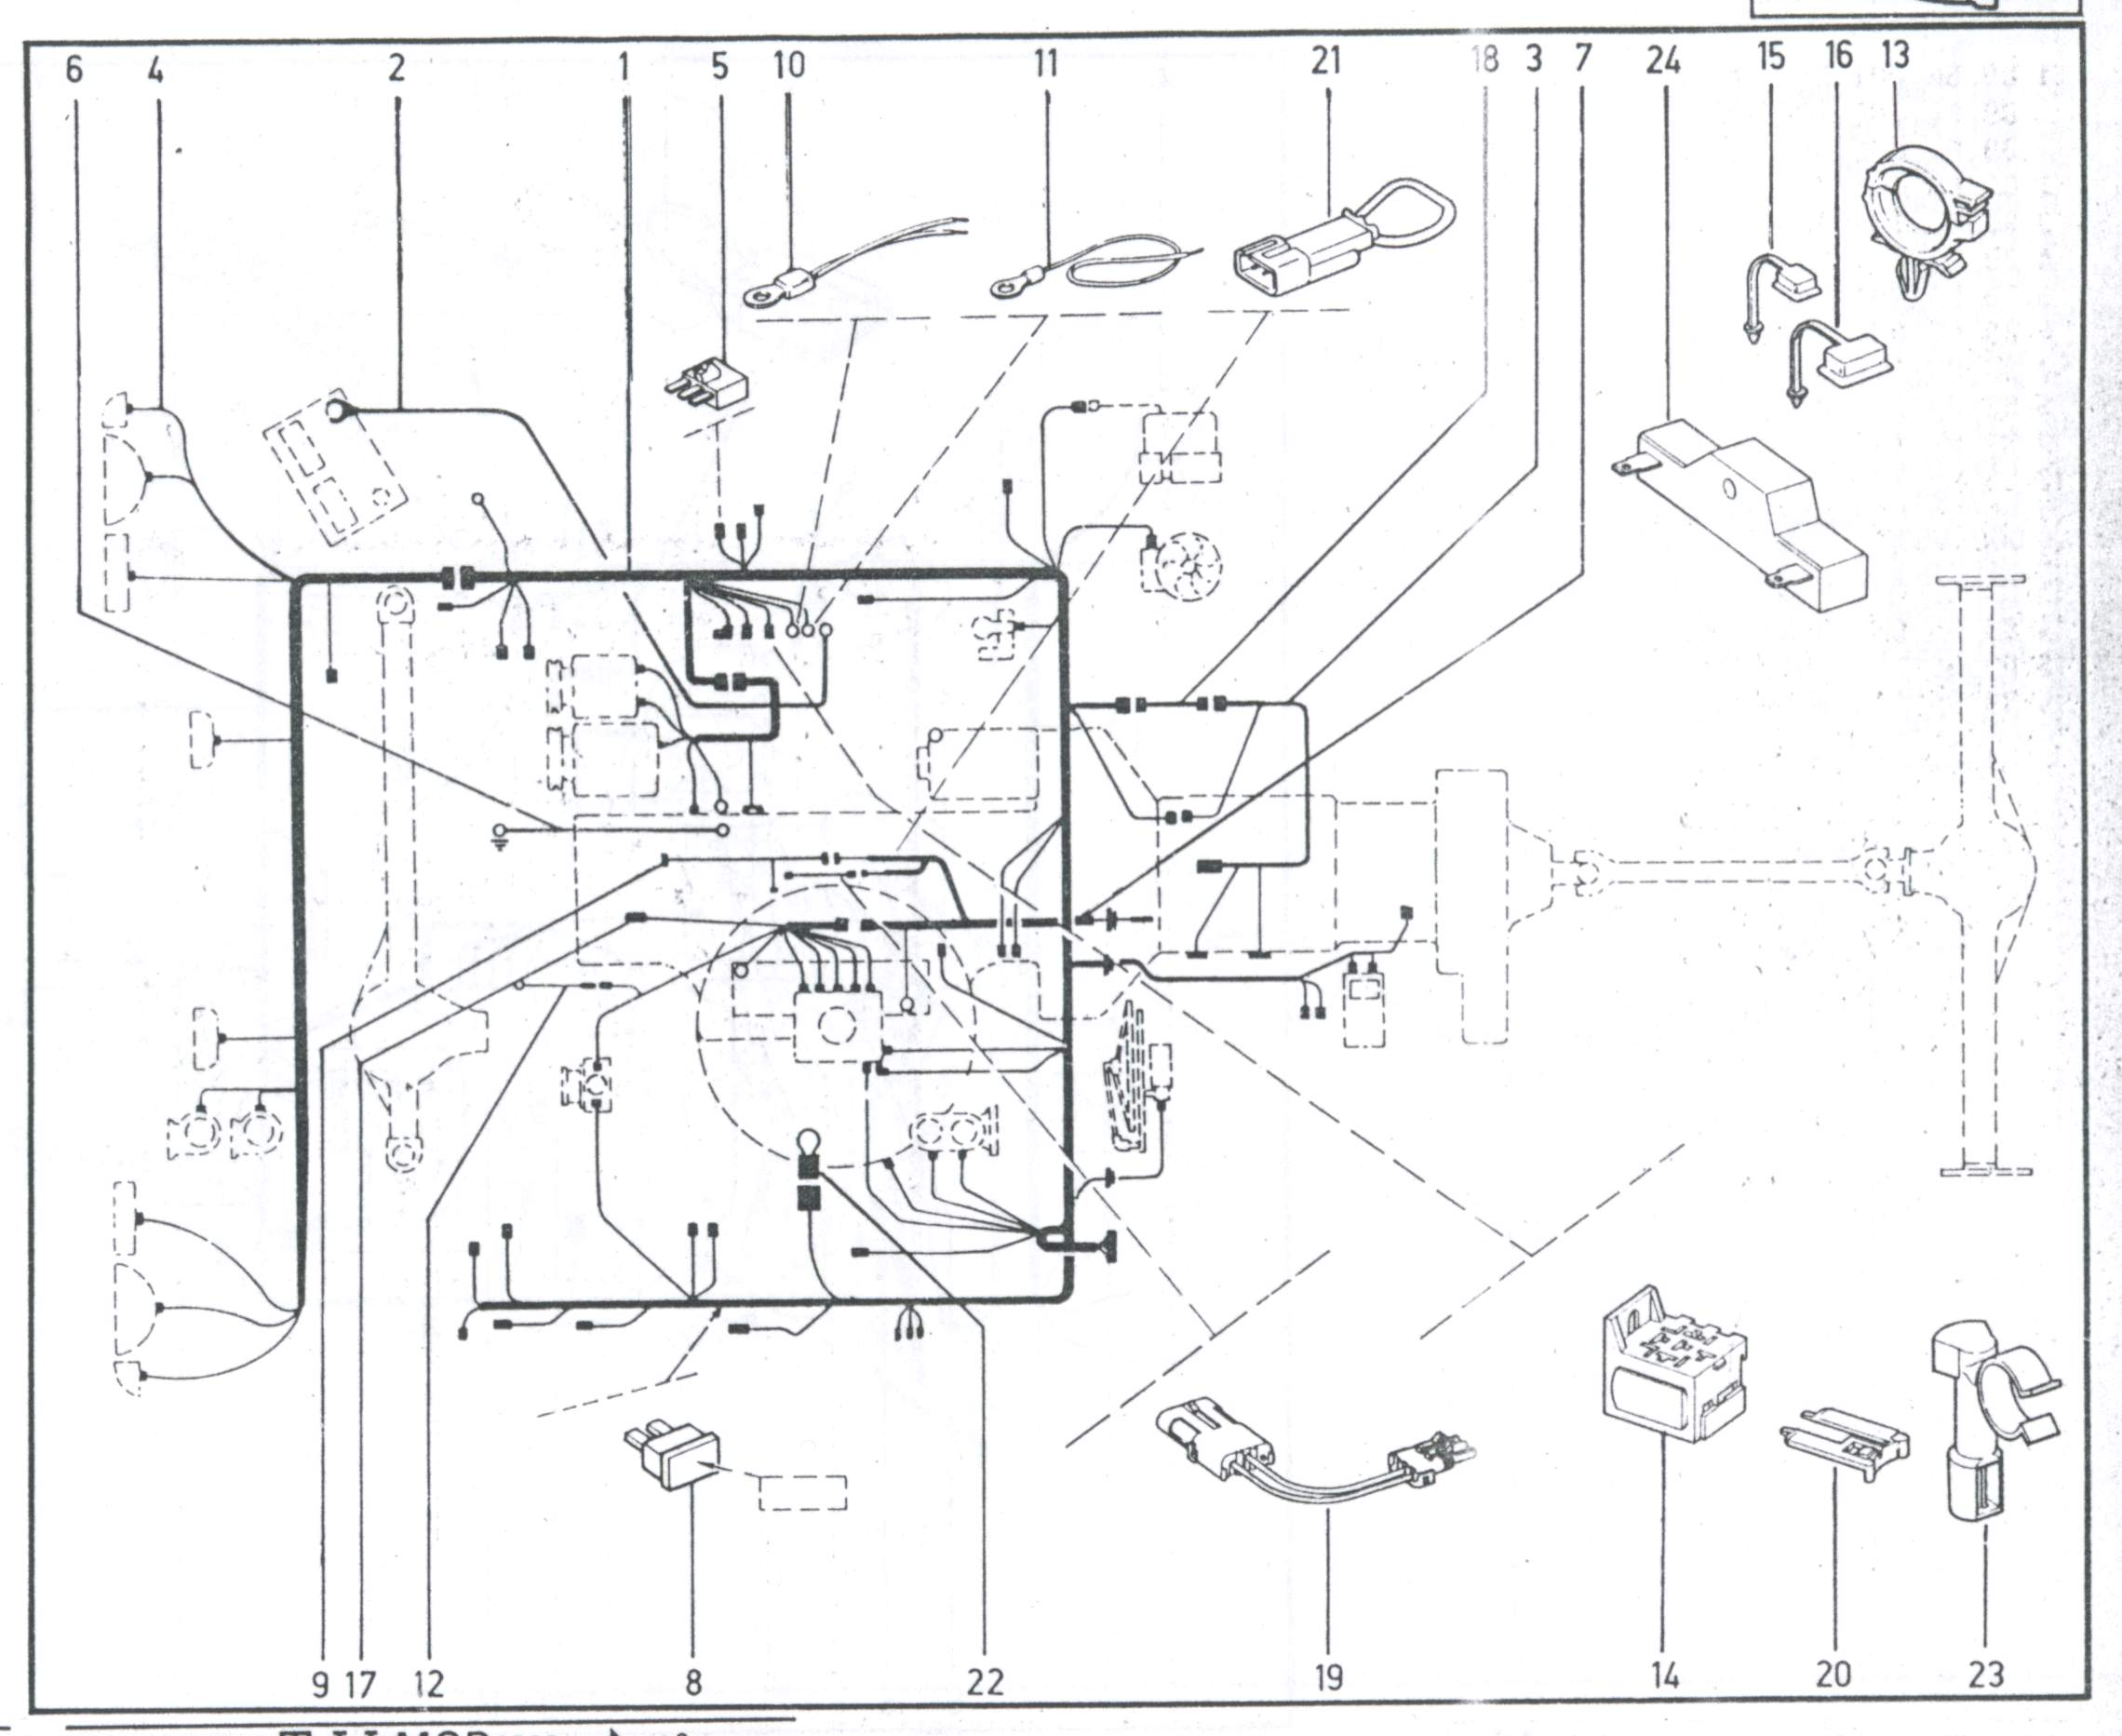 1989 Jaguar Xj6 Engine Diagram - Wiring Diagrams Folder on